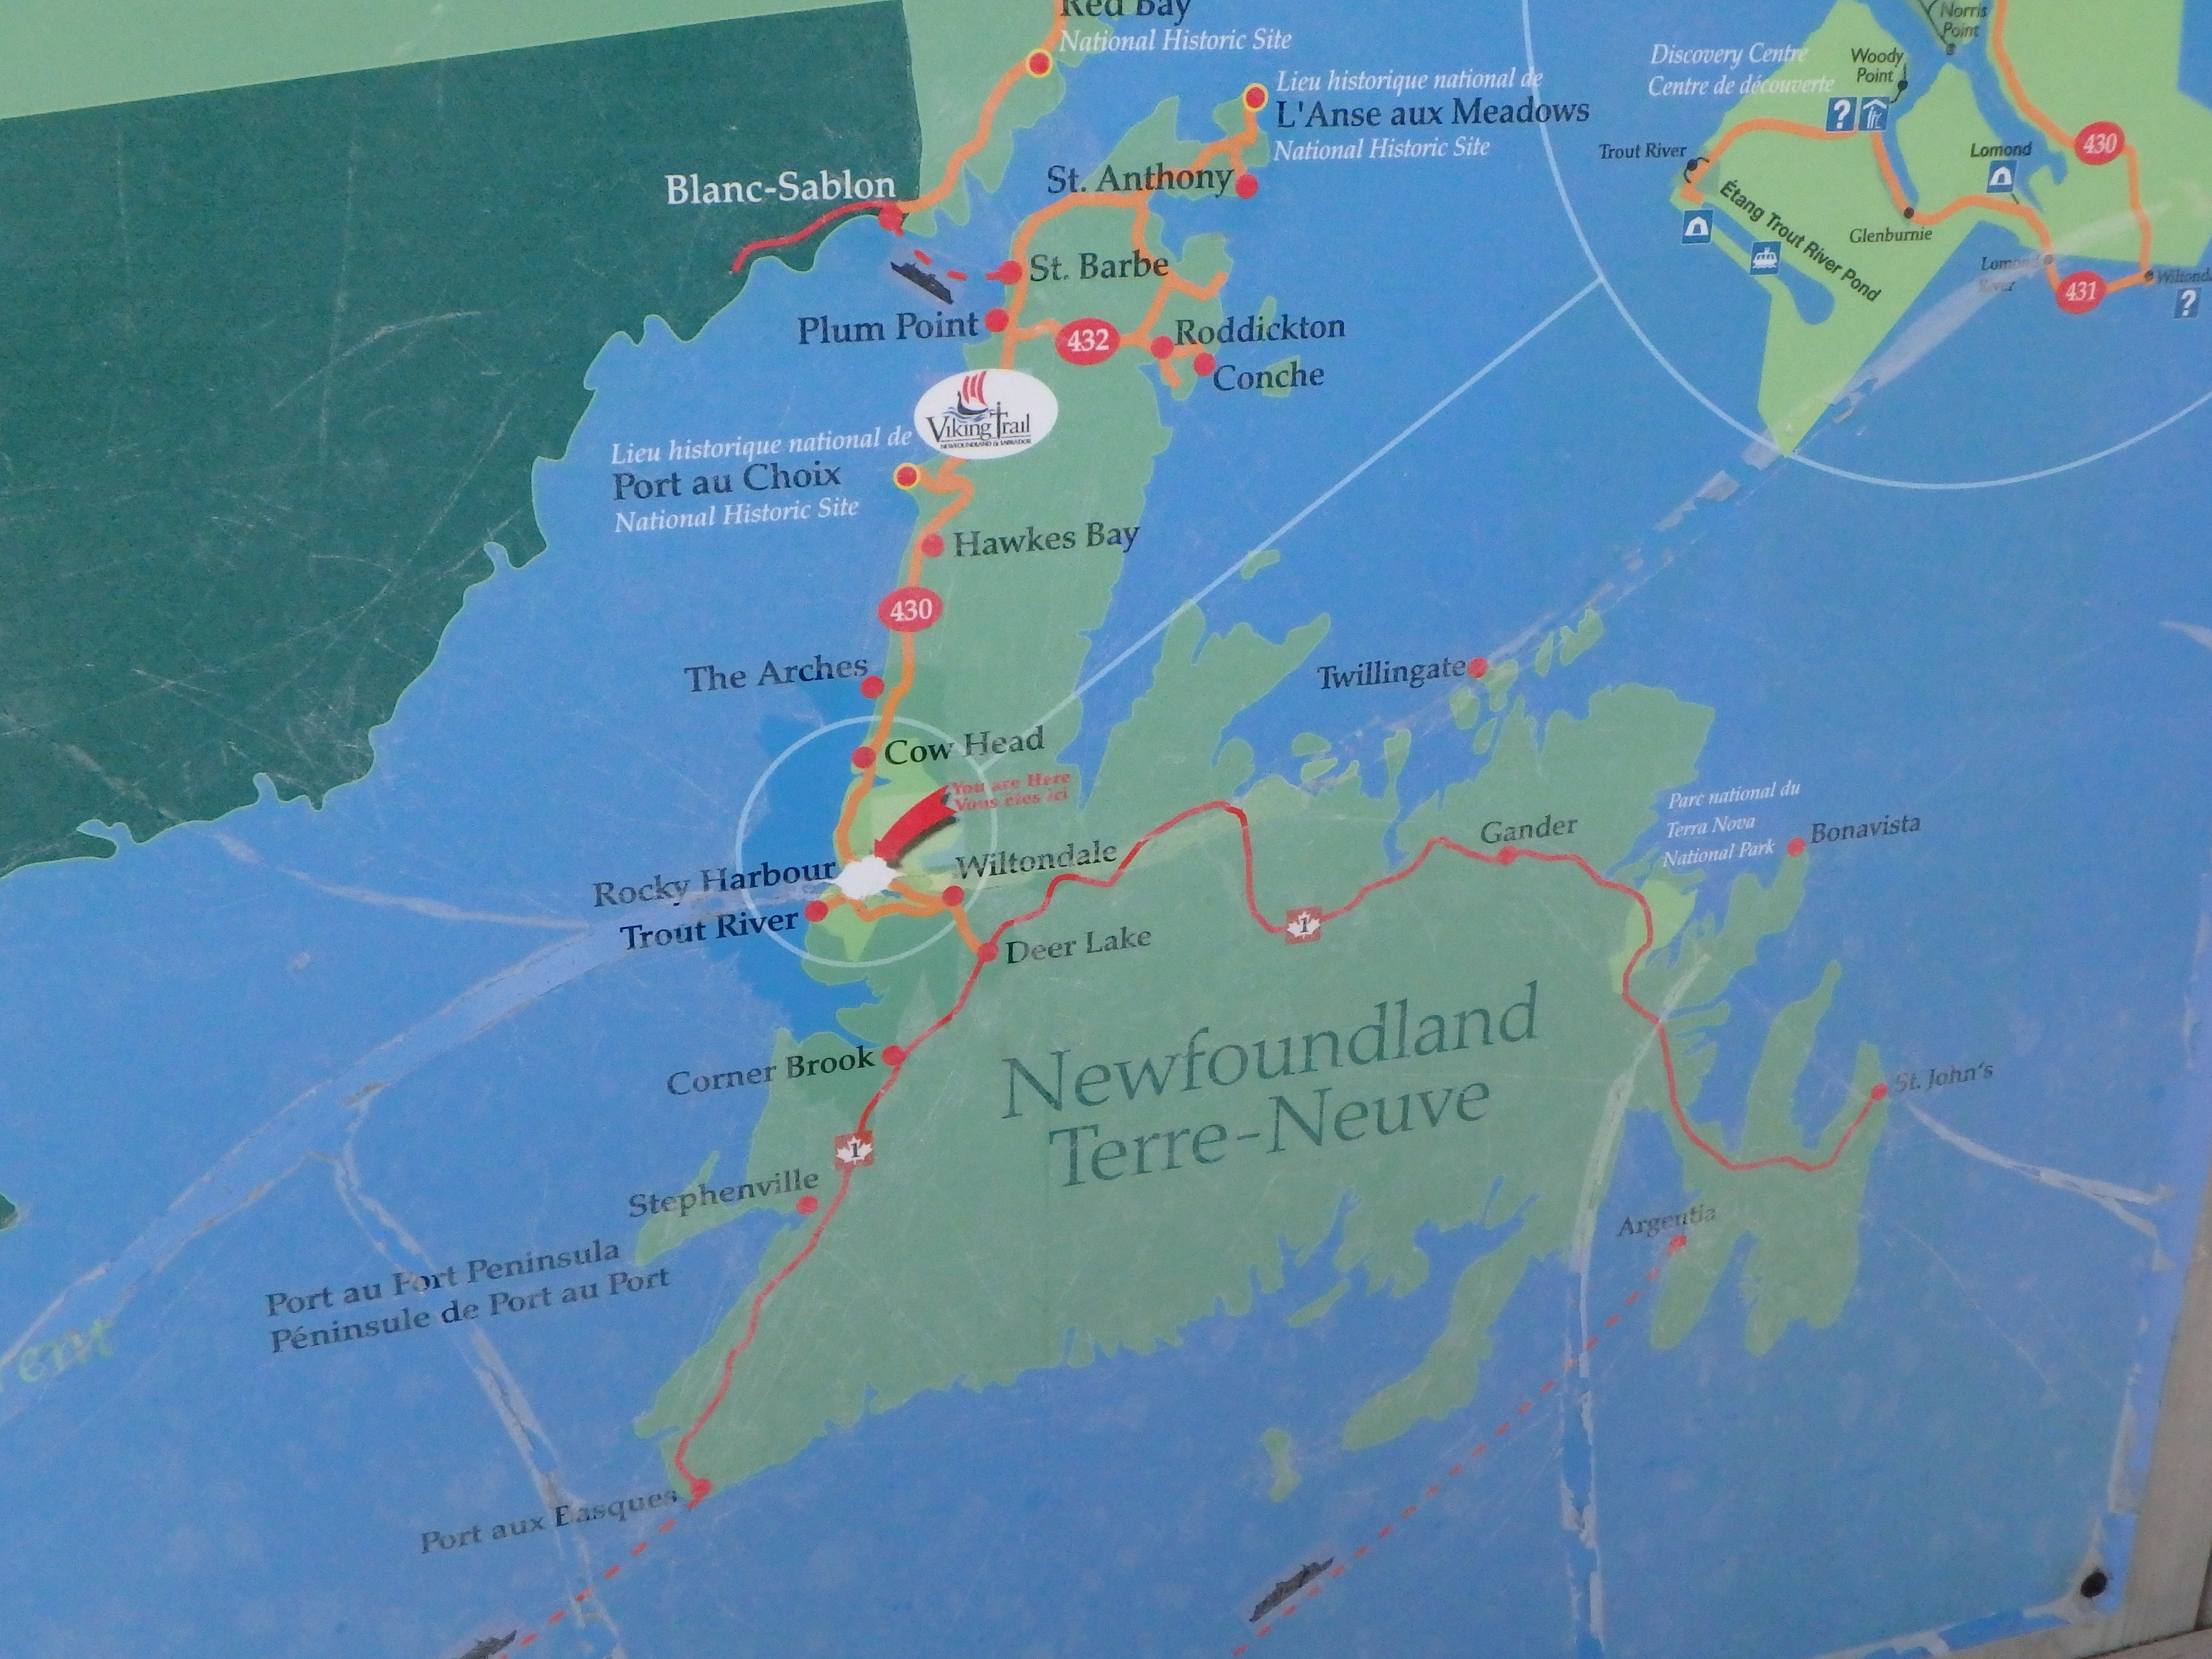 Newfoundland Map; Bonne Bay Marine Station, Newfoundland; 2015